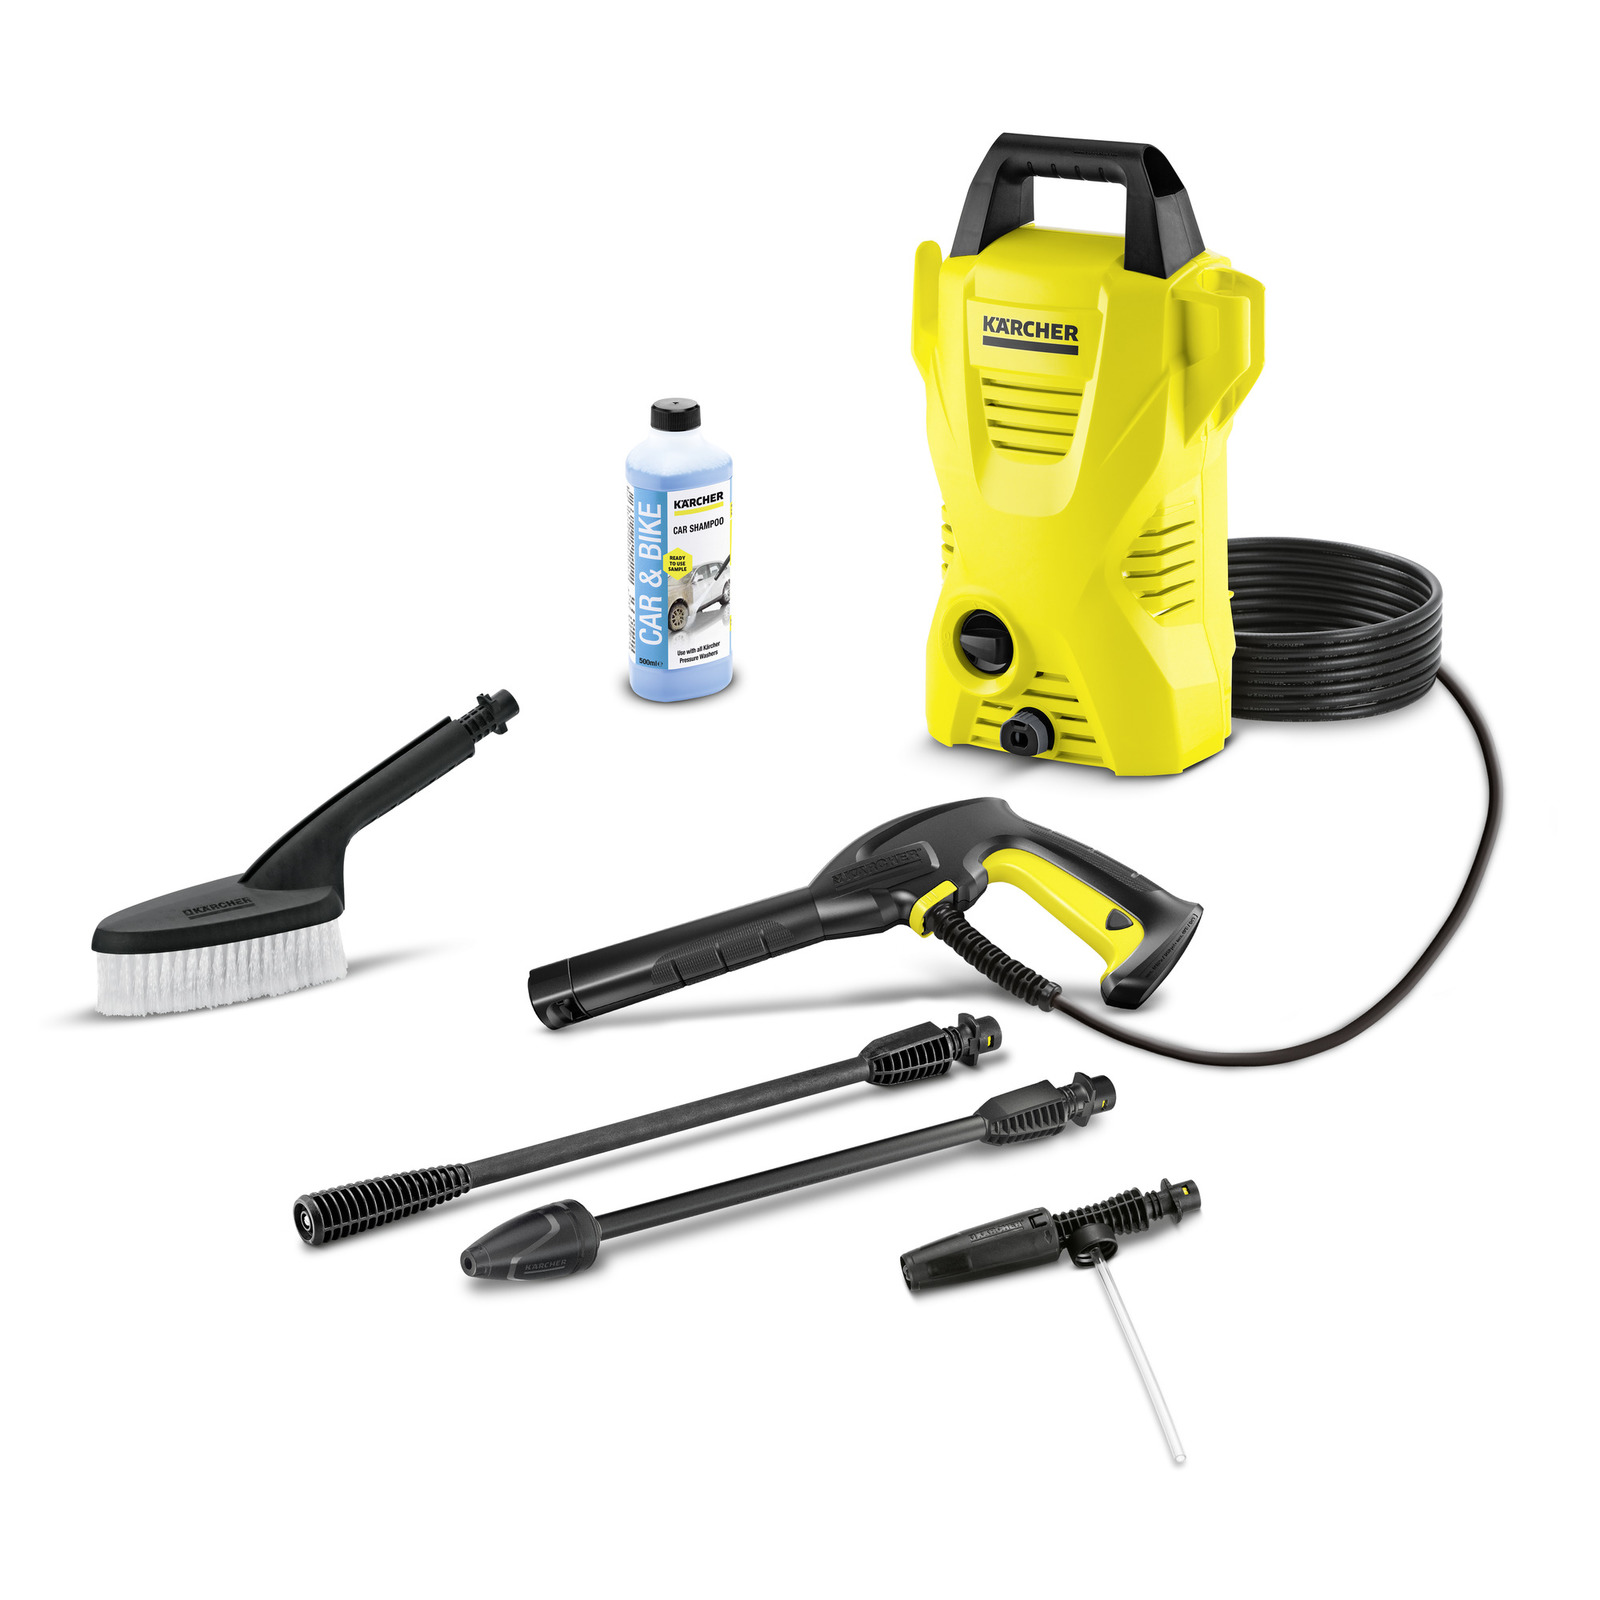 Lot 30440 - V Brand New Karcher K2 Compact Car High Pressure Cleaner With Wash Brush - Foam Nozzle & Car Shampoo